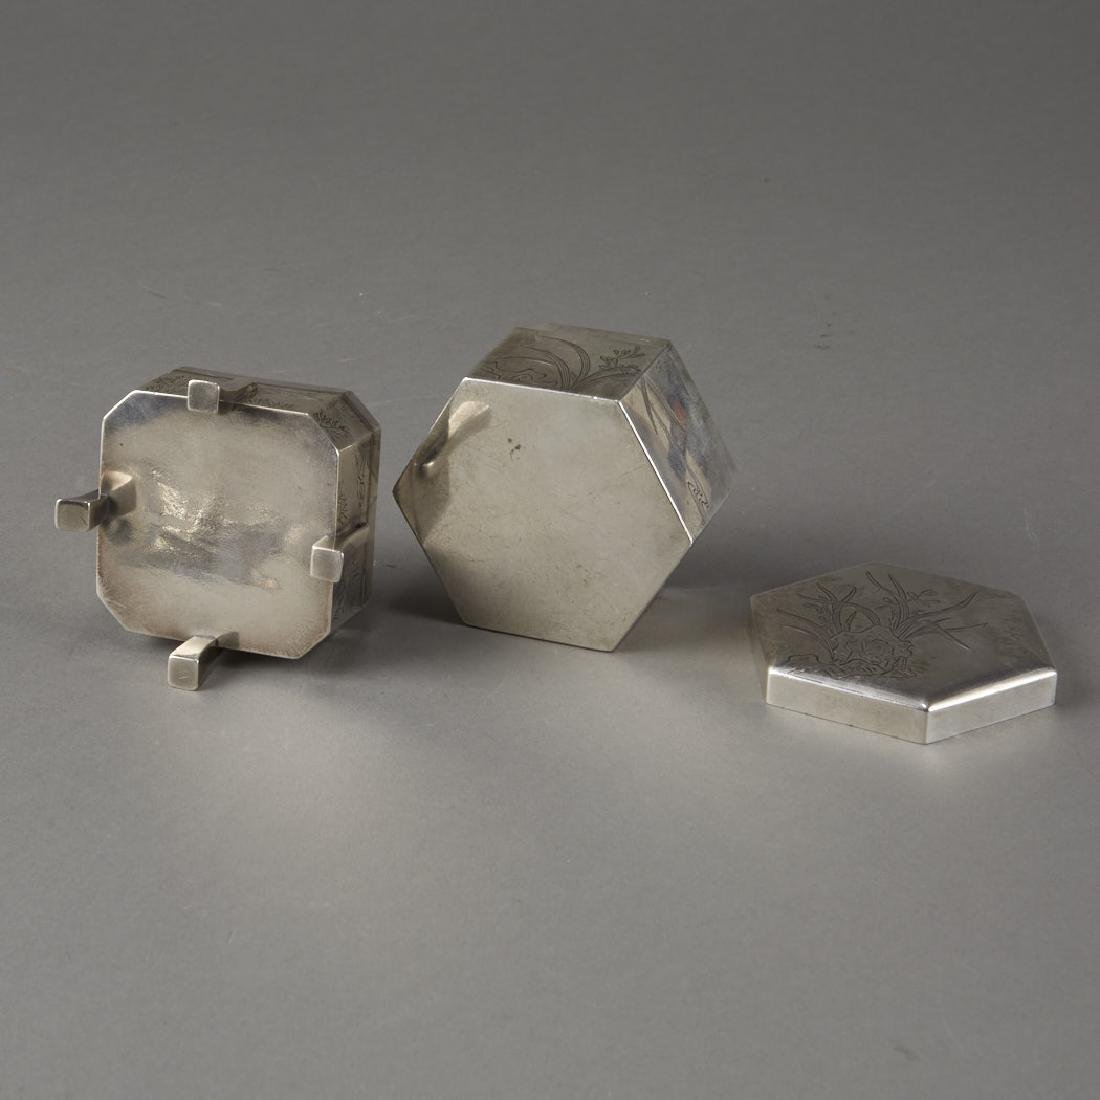 Japanese 20th C. Silver Boxes Decoration - 8